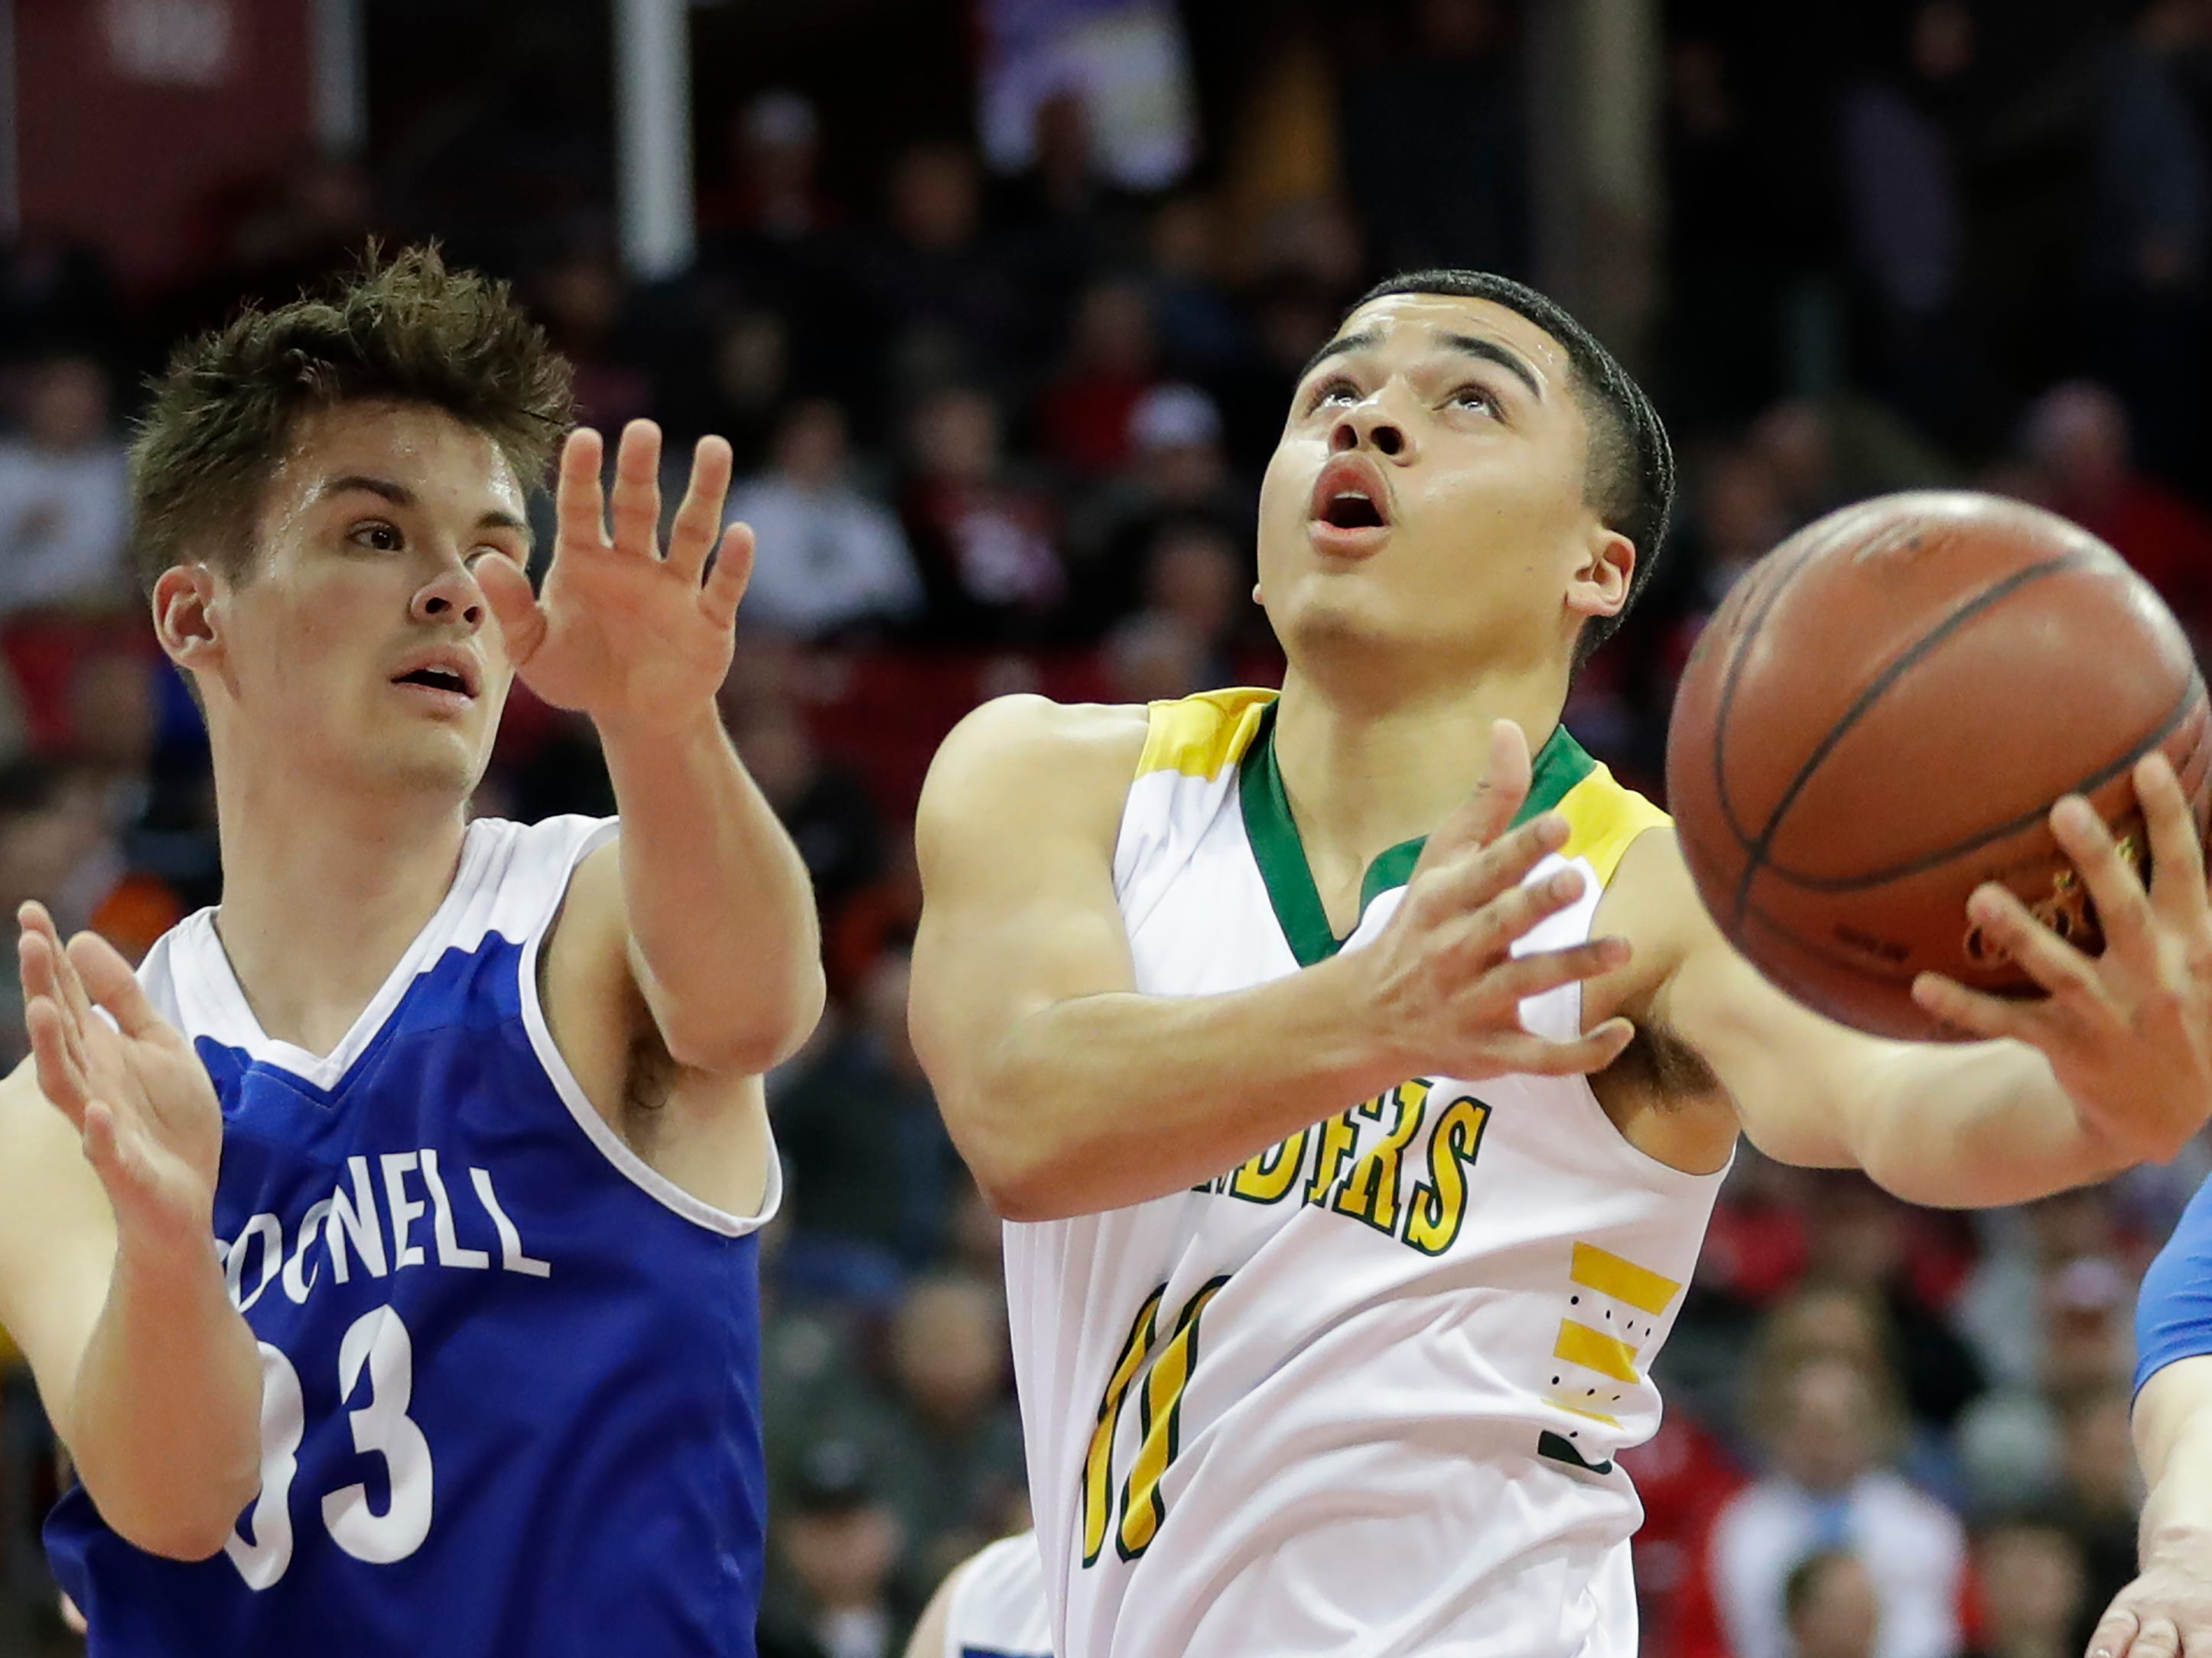 Sheboygan Area Lutheran High School's Michael Berger (11) takes it to the hoop against McDonell Central Catholic High School's Charlie Bleskachek (33) during their WIAA Division 5 boys basketball state semifinal at the Kohl Center Friday, March 15, 2019, in Madison, Wis.